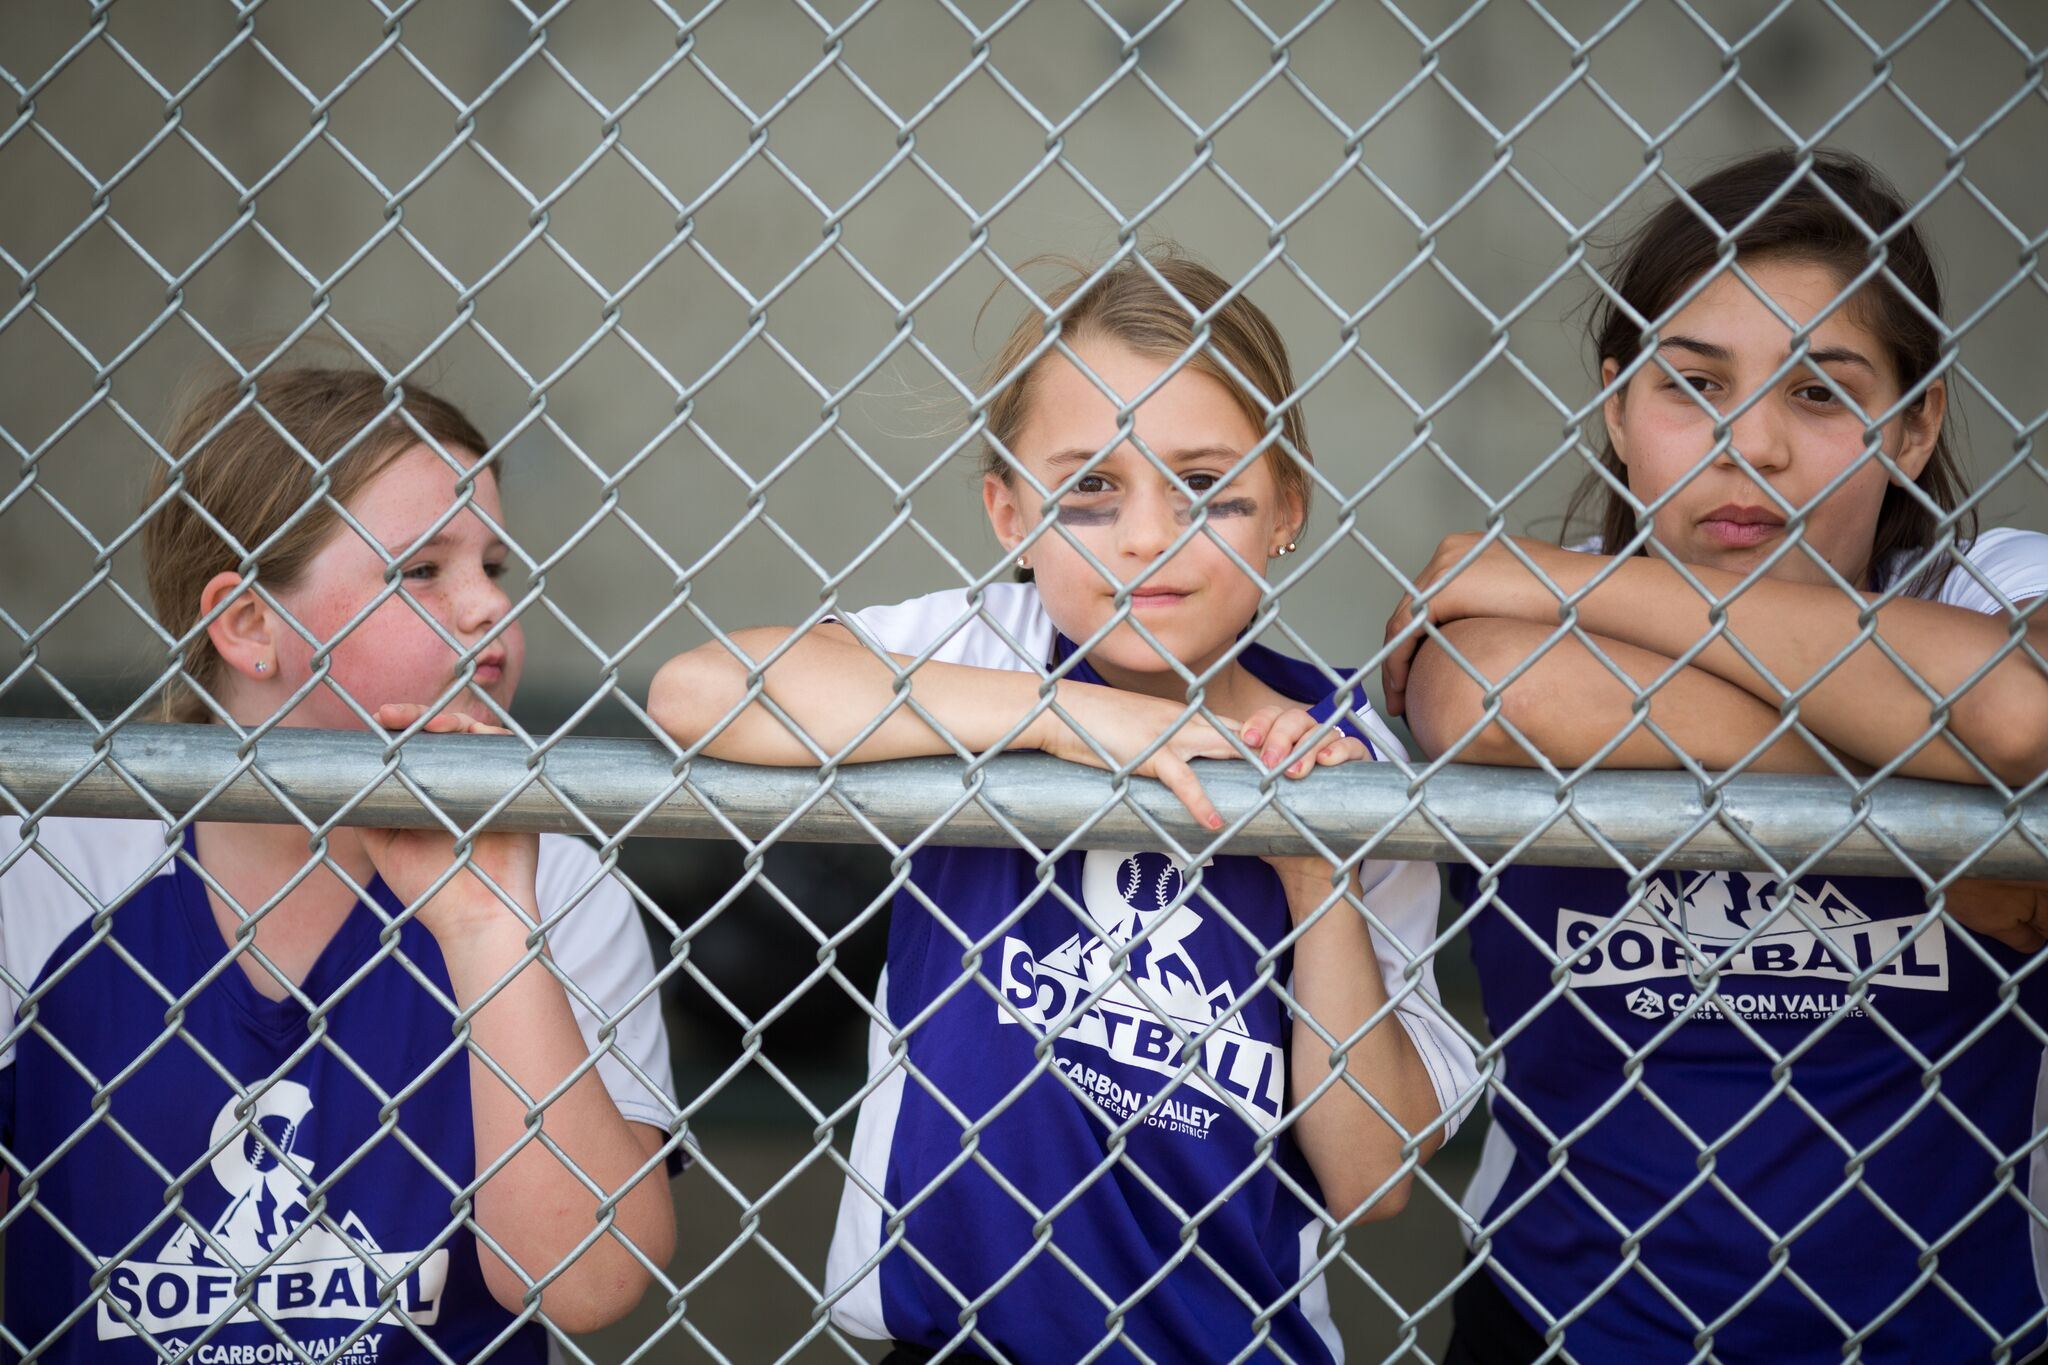 Three girls standing behind fence in dugout looking at fotball field.